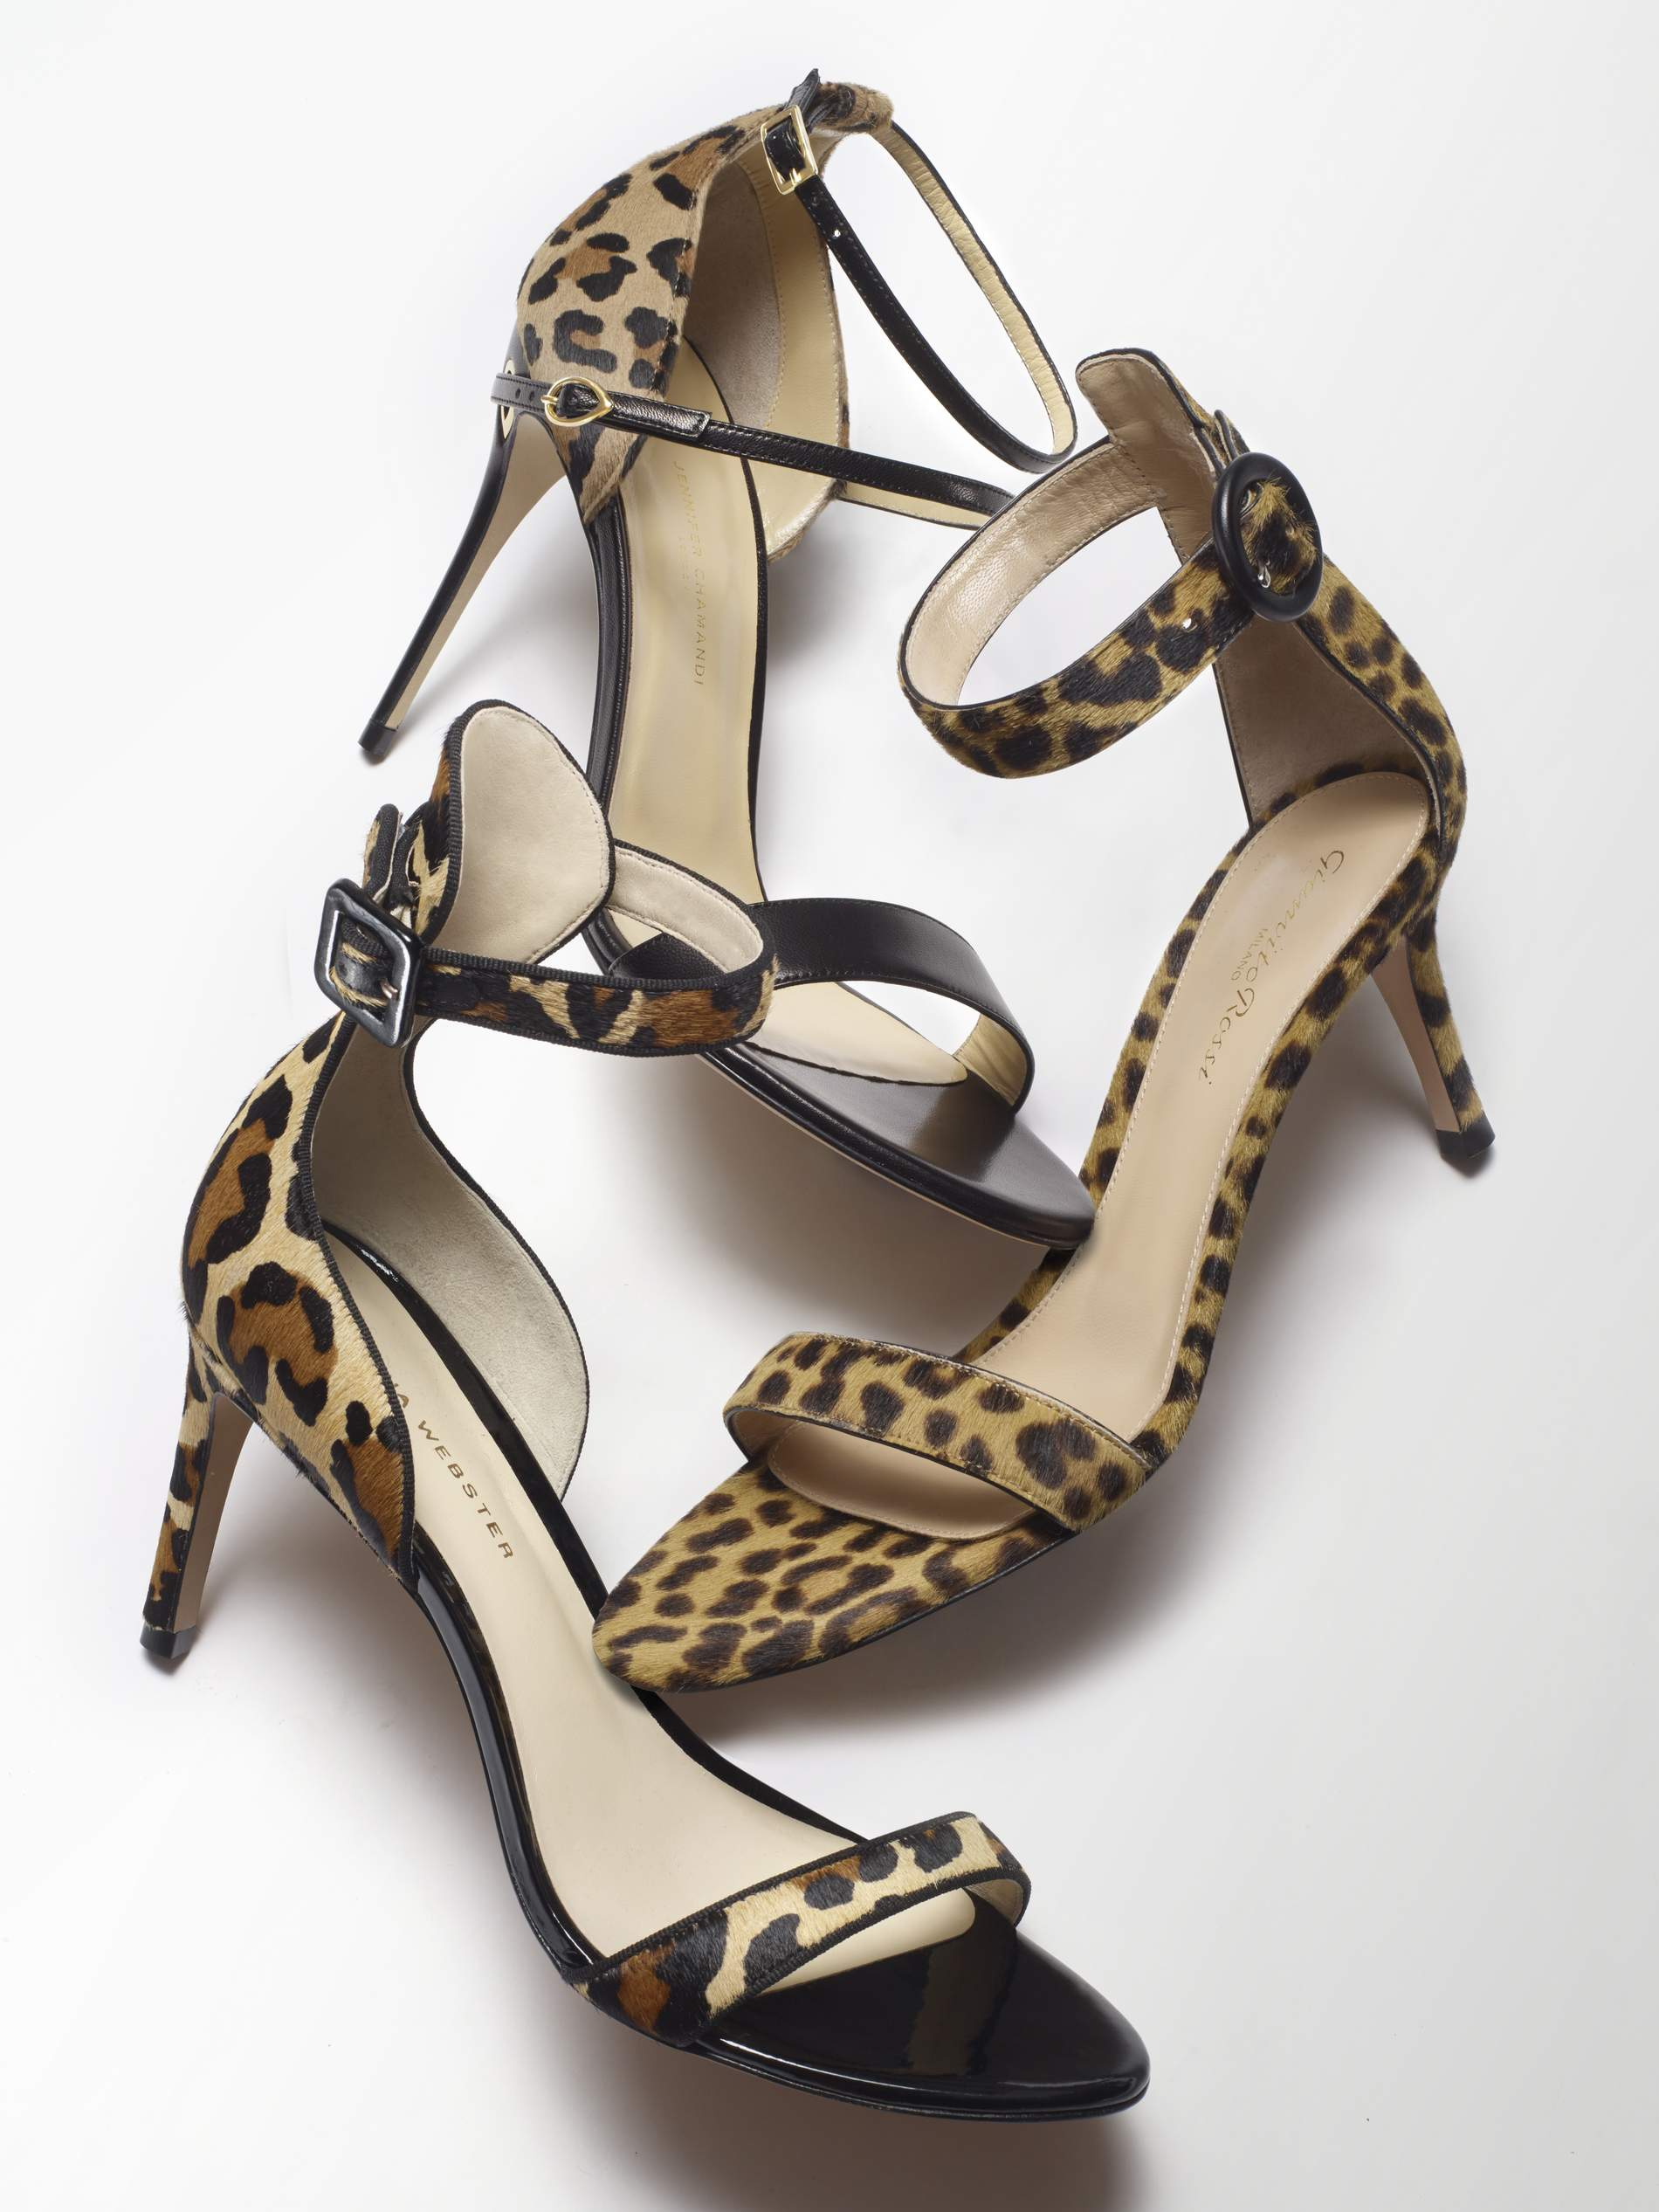 Animal Print Shoes | Snake & Leopard Print Shoes | schuh